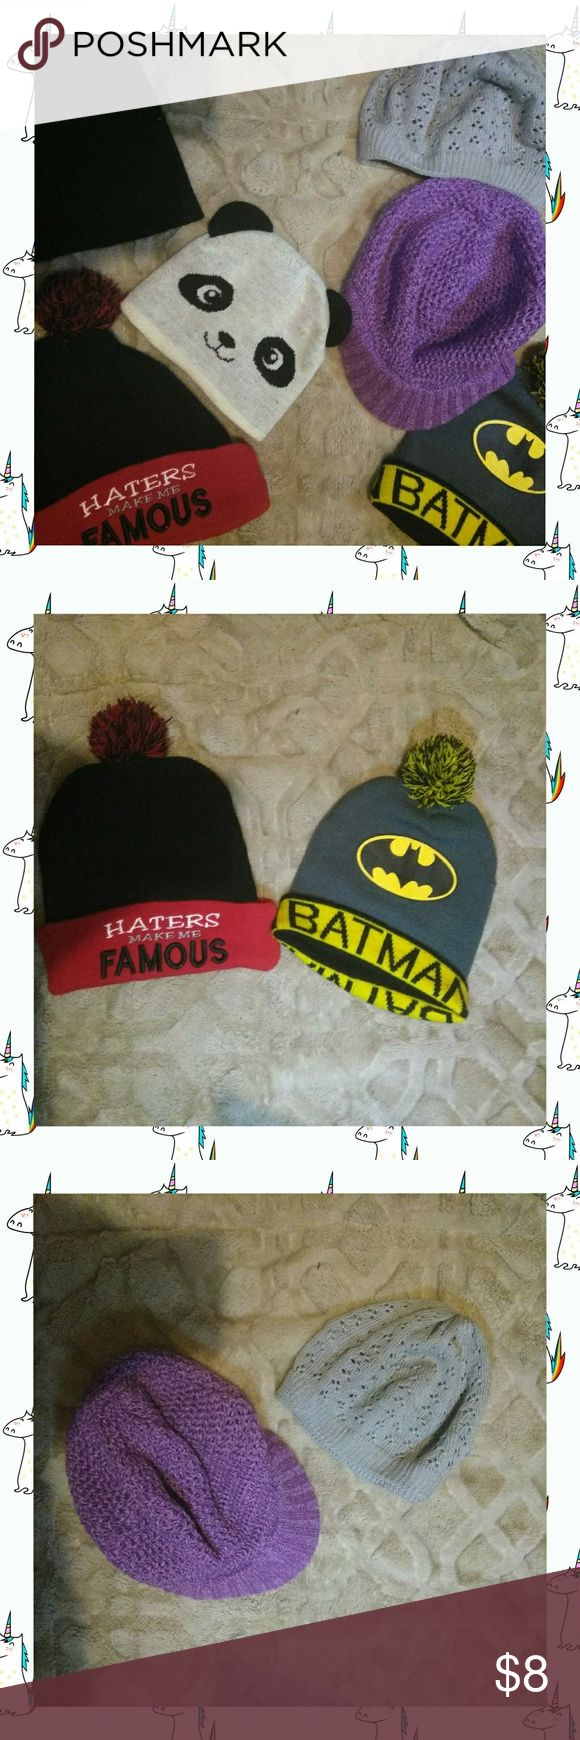 Beanie Hat Bundle Beanie Hat Bundle  These have been worn but have been washed twice for sale.  Beanies can be removed if needed but I would highly encourage you to purchase as a whole.  Bundle includes: - Panda Beanie (smaller size) - Haters Make Me Famous Beanie (w/ Pom-Pom) - Batman Beanie (w/ Pom-Pom) - Gray Slouch Beanie - Purple Slouch Beanie w/Bill  Feel free to ask any questions 😄  🚫 No Trades 🚫 ✔Make an offer✔ Other